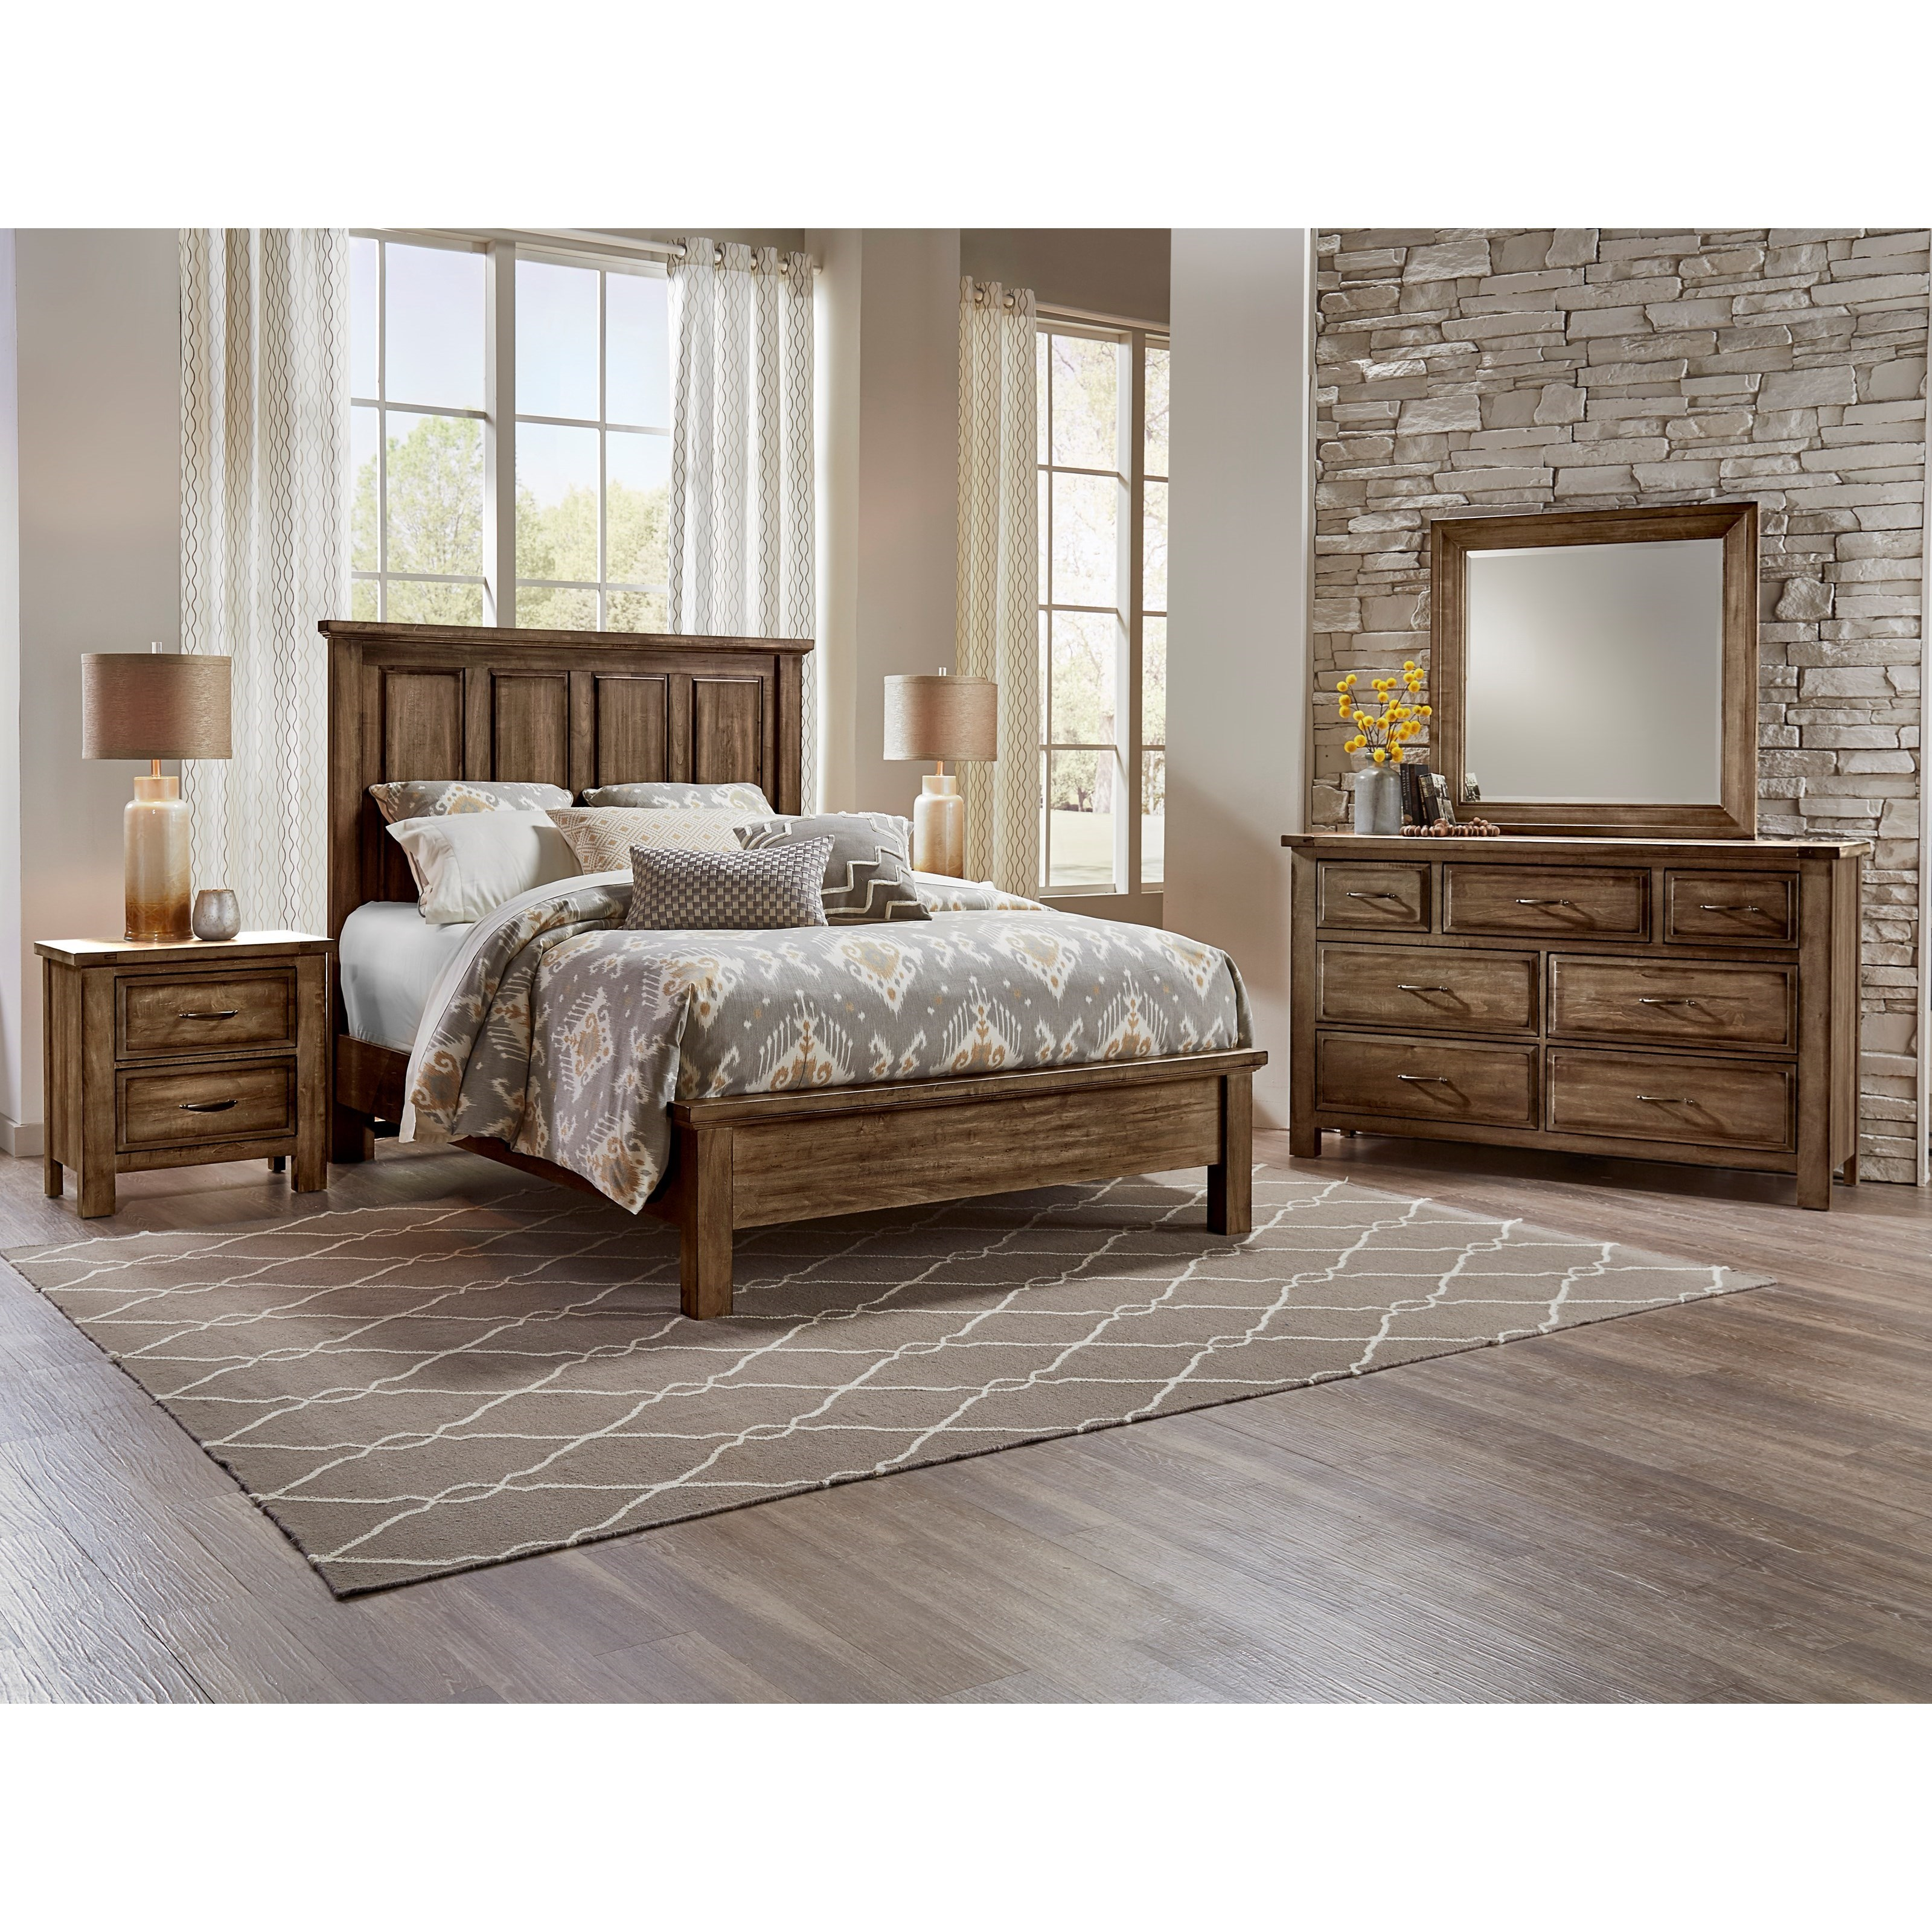 Maple Road King Bedroom Group by Artisan & Post at Gill Brothers Furniture